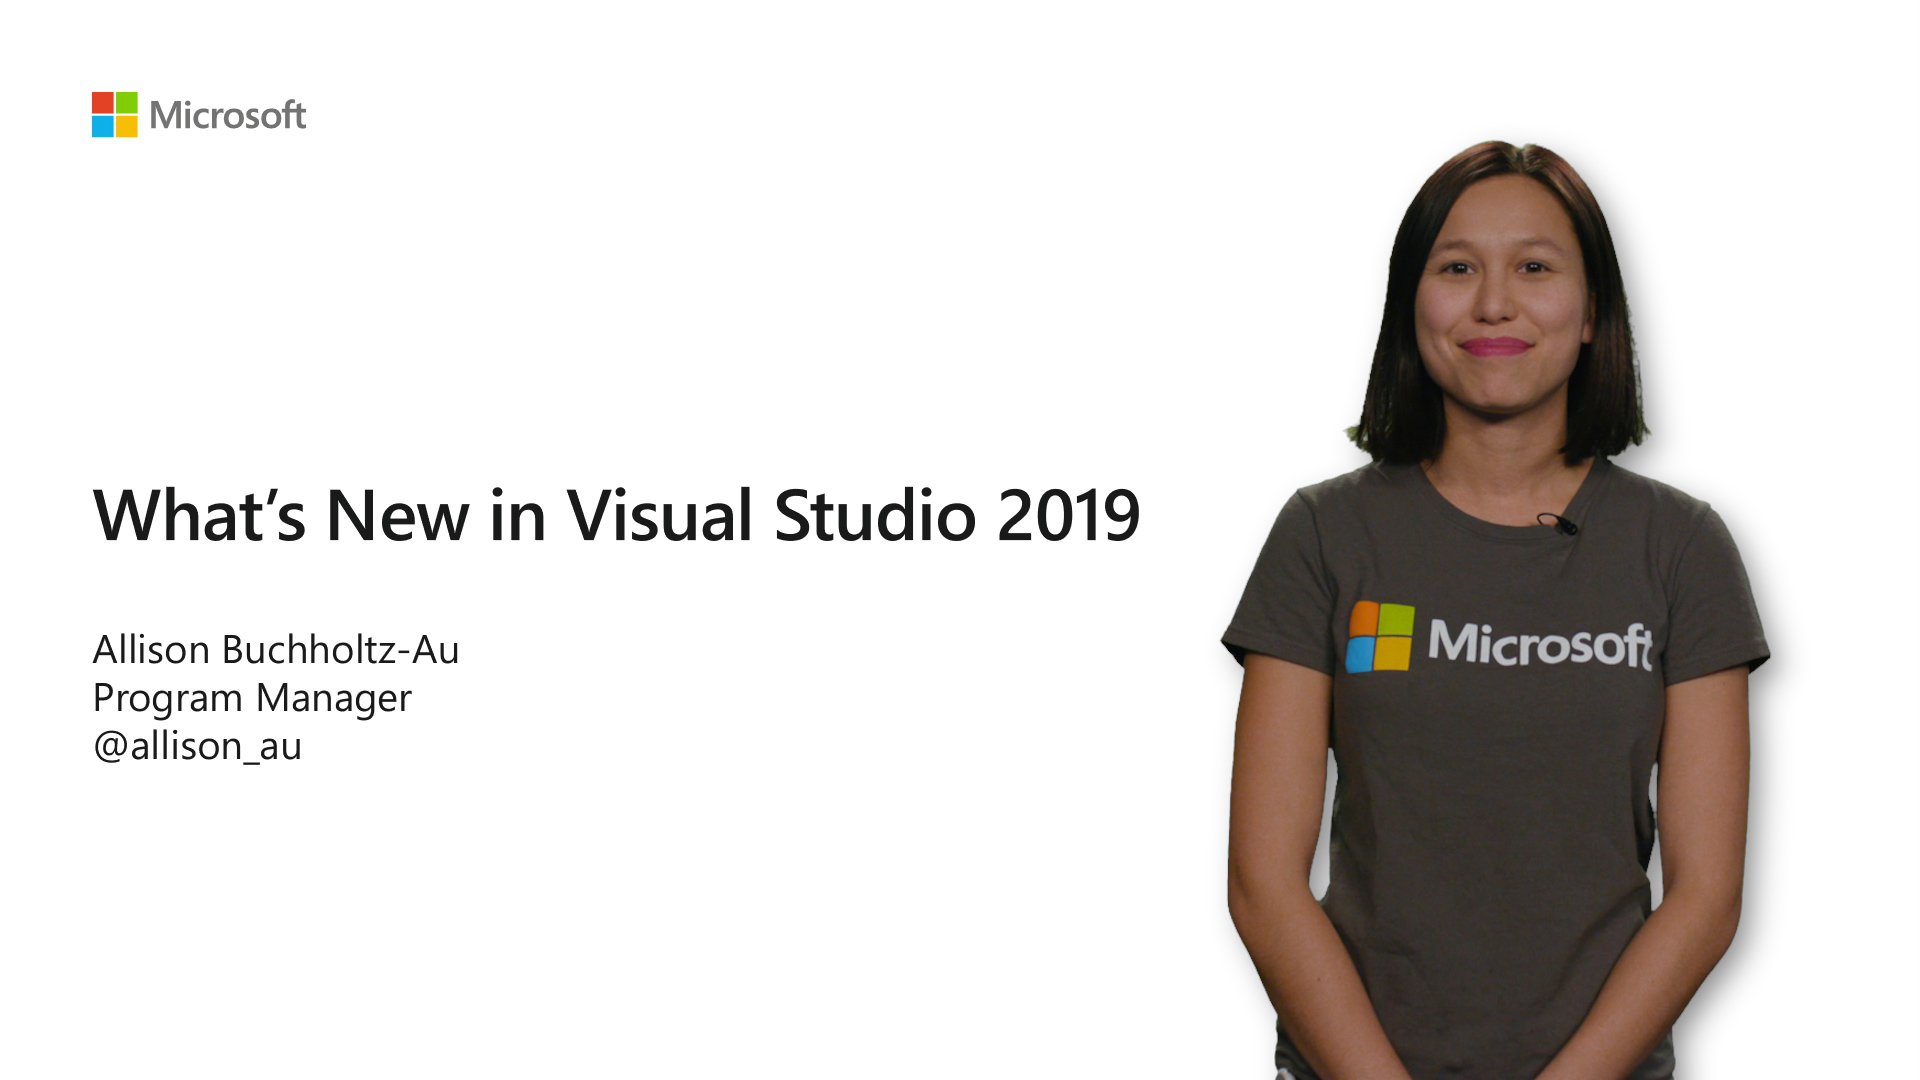 Video summary of updates coming in Visual Studio 2019